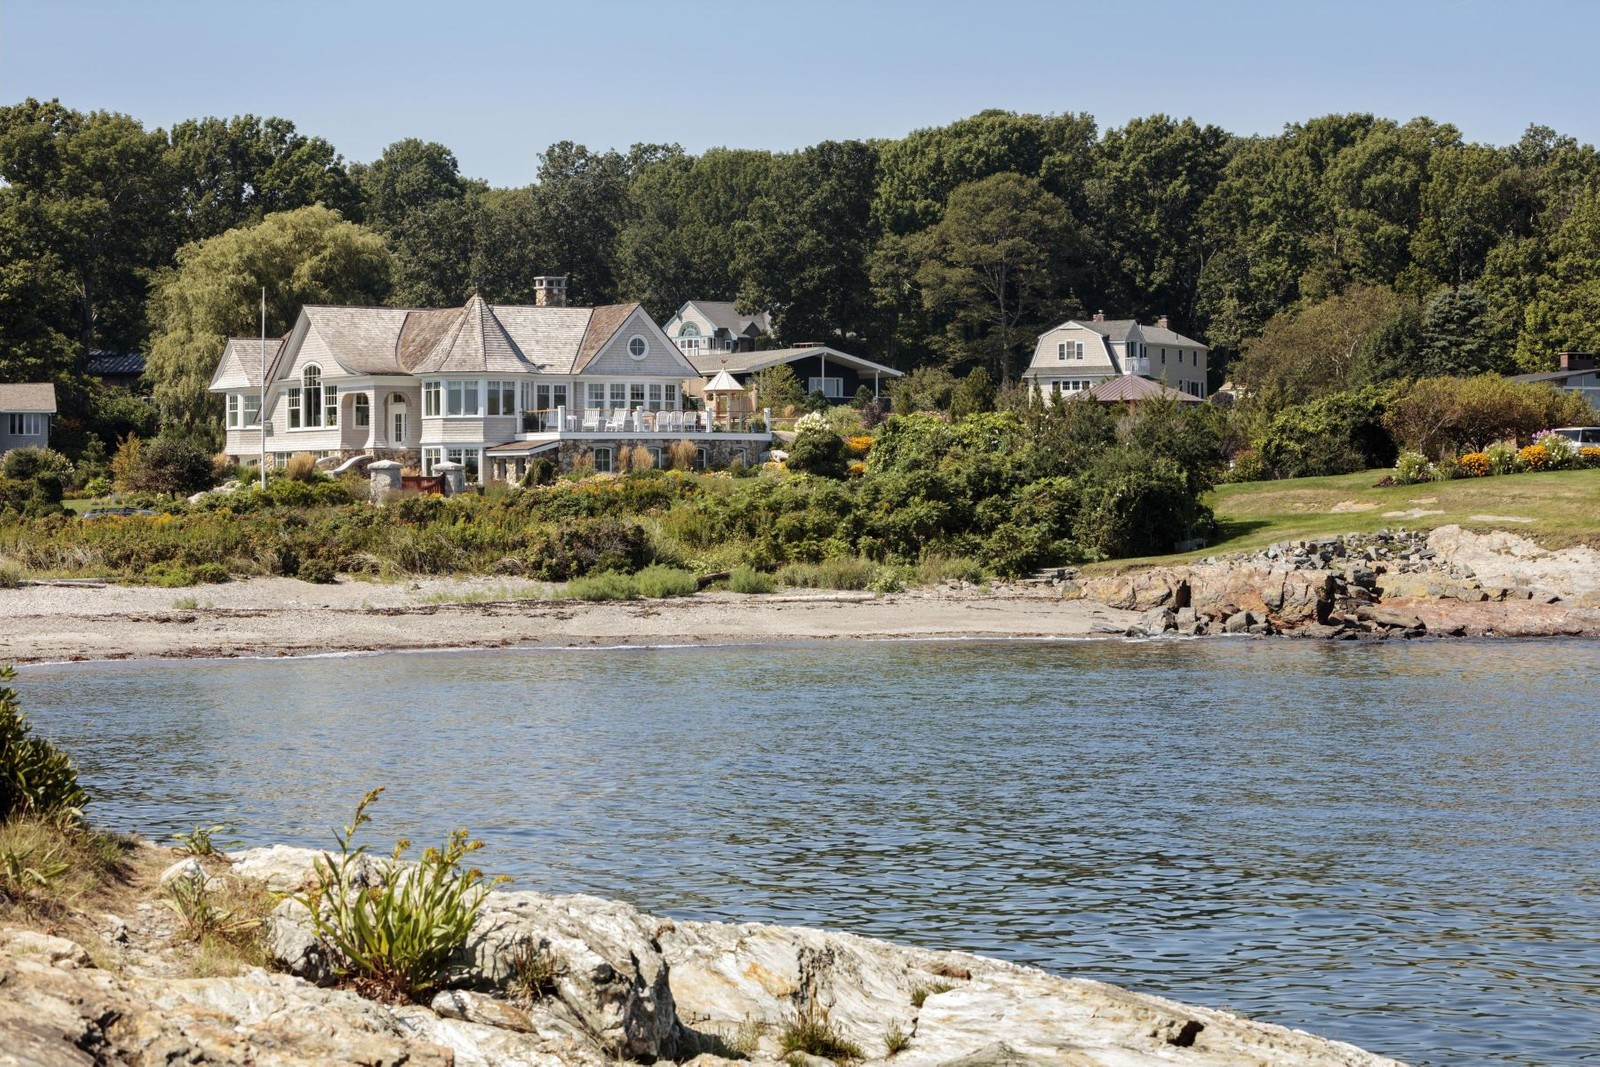 Single Family Homes for Sale at 21-15 Reef Road Cape Elizabeth, Maine 04107 United States